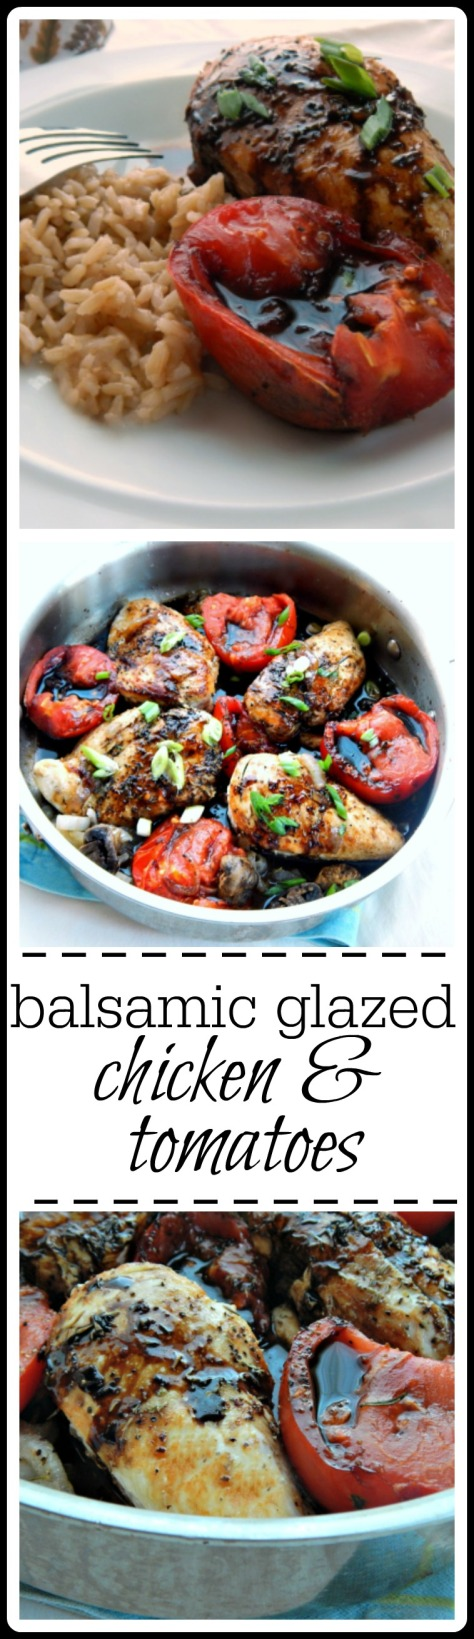 Balsamic Glazed Chicken & Tomatoes - so simple & so good. The big surprise? Those tomatoes steal the show.